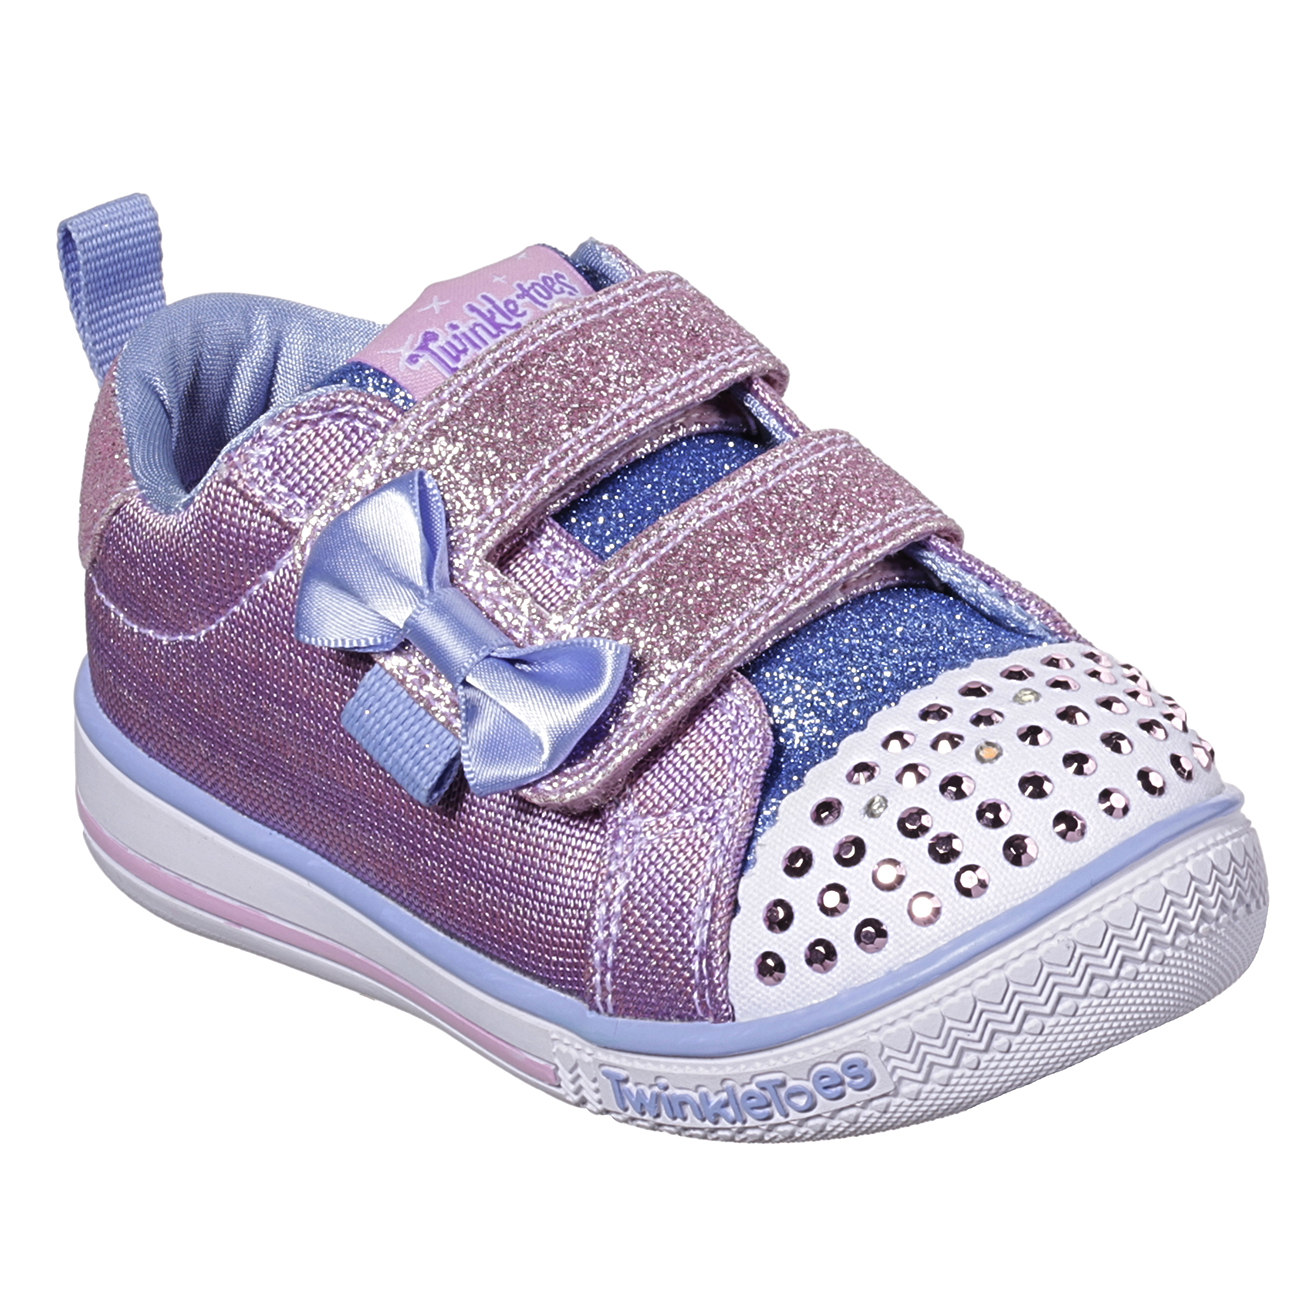 Kids Girls Infants Skechers Twinkle Play Sparkle Printer